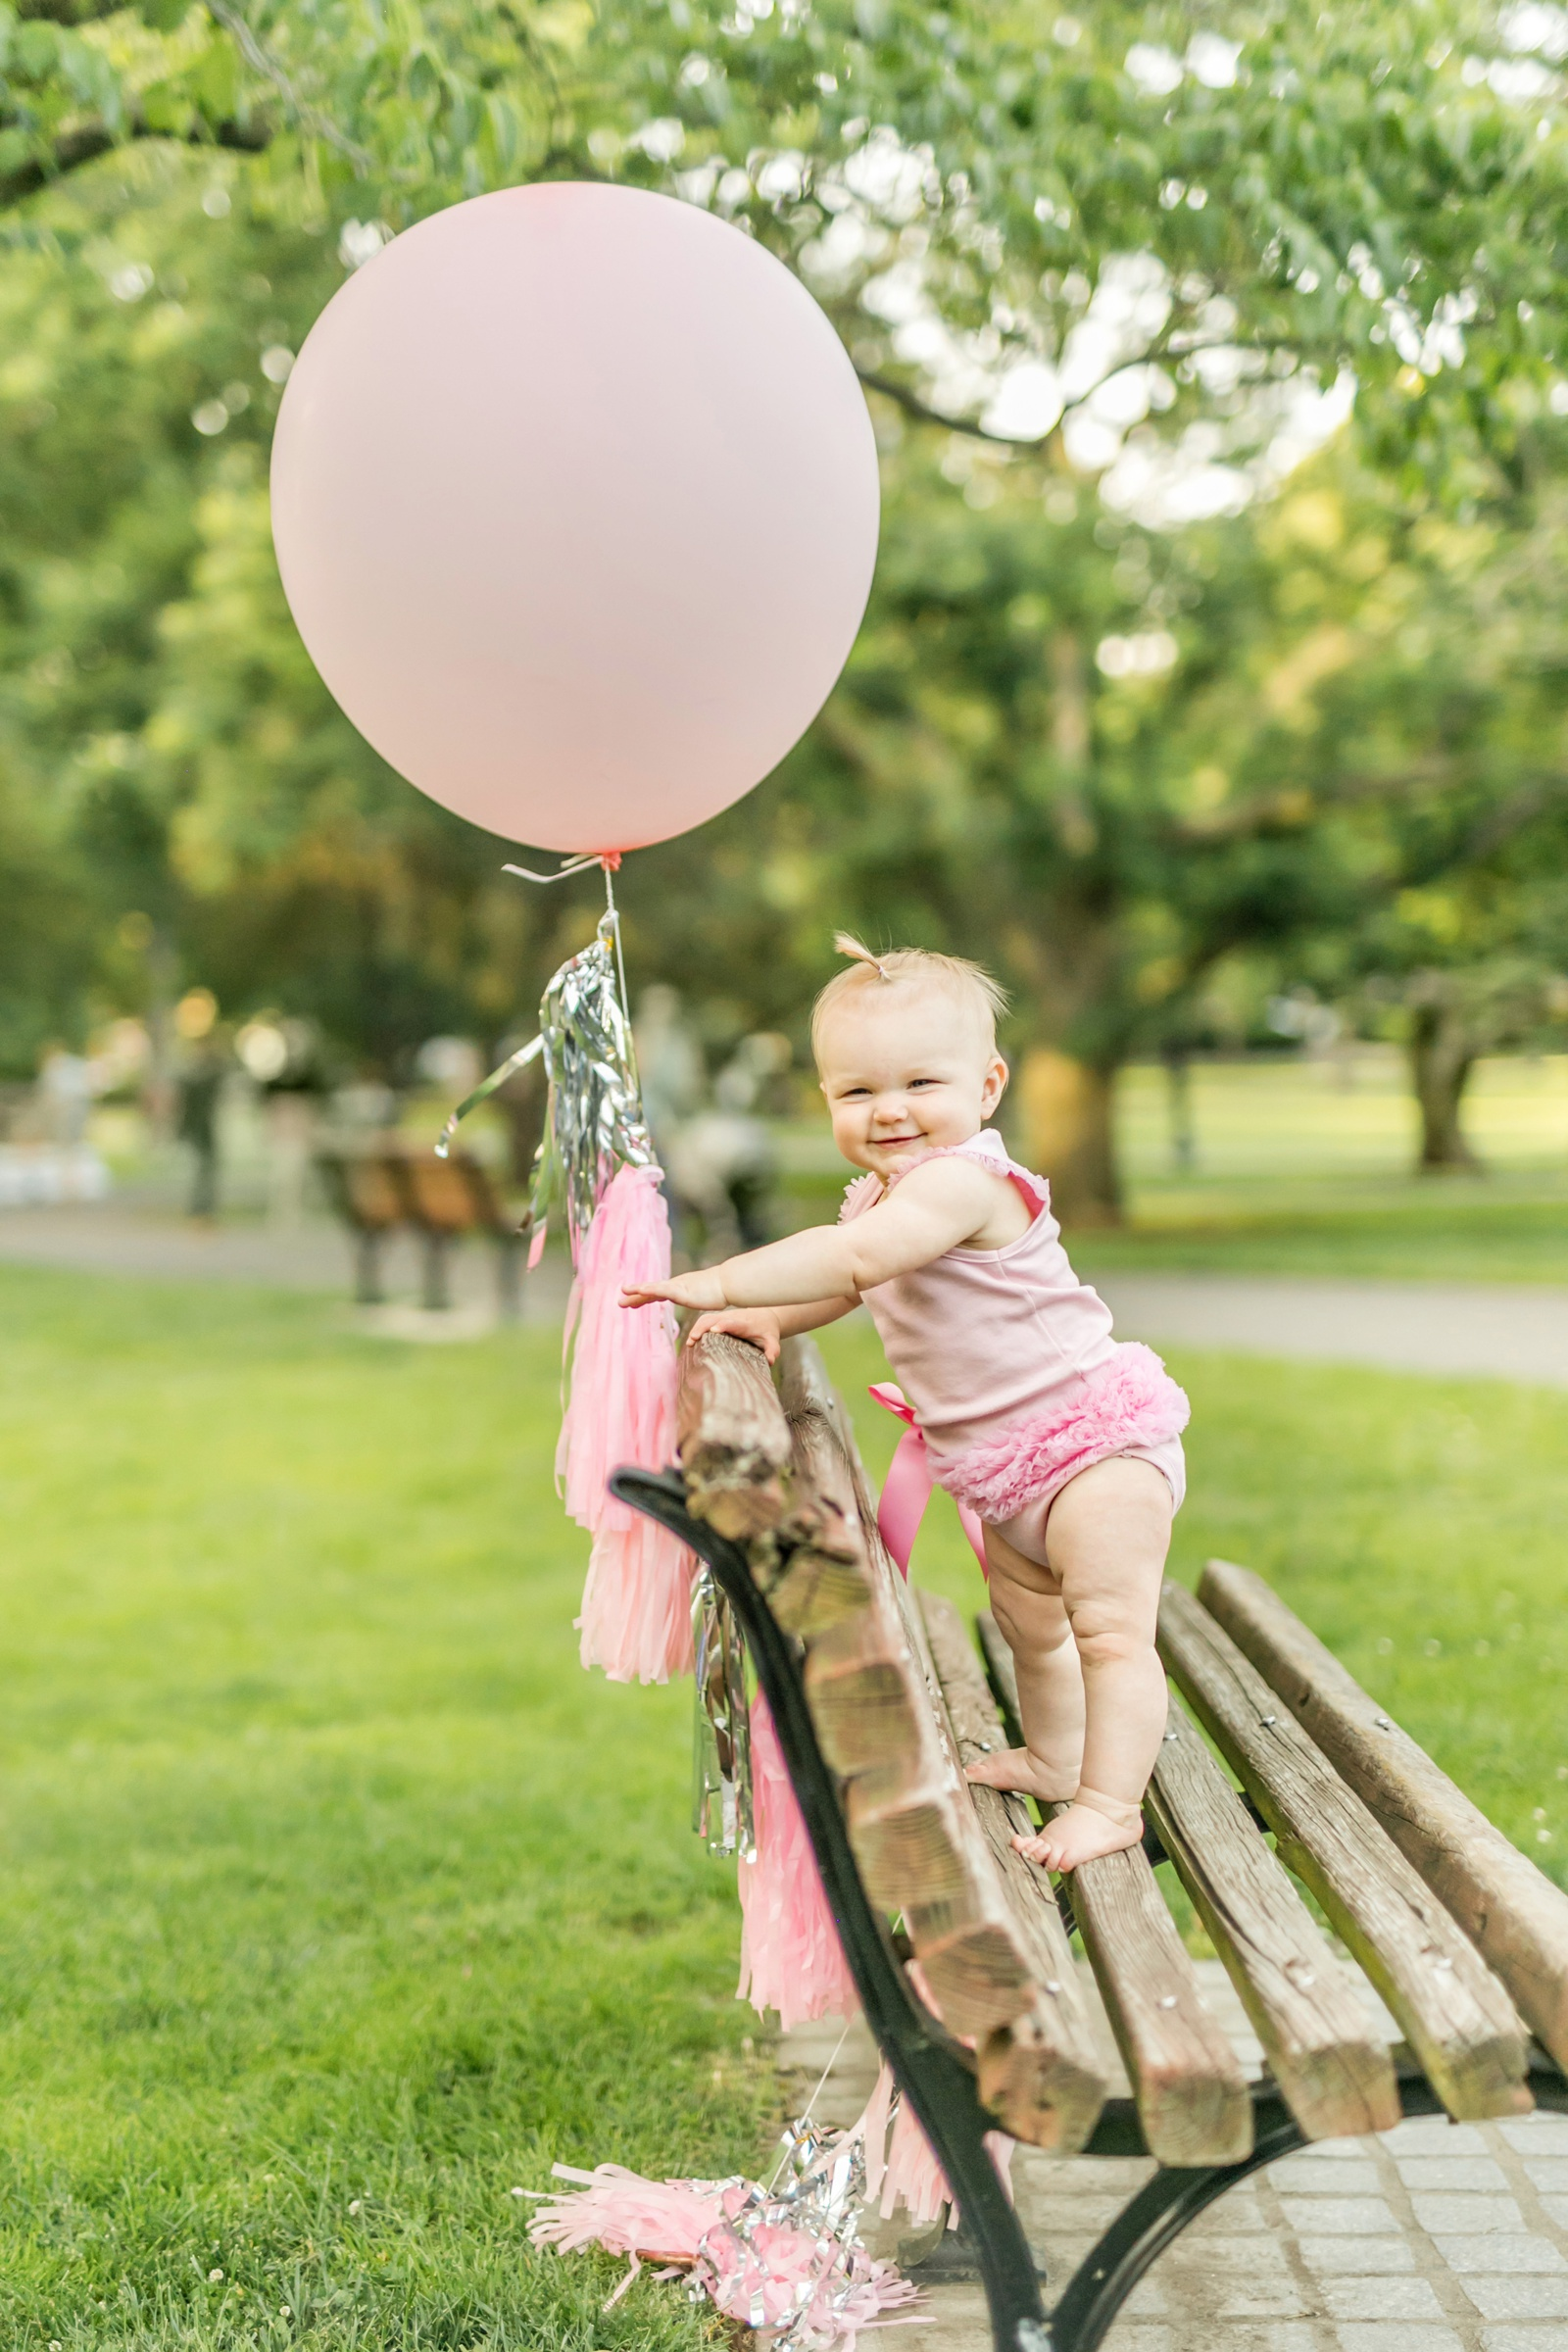 baby with balloon in Public Garden